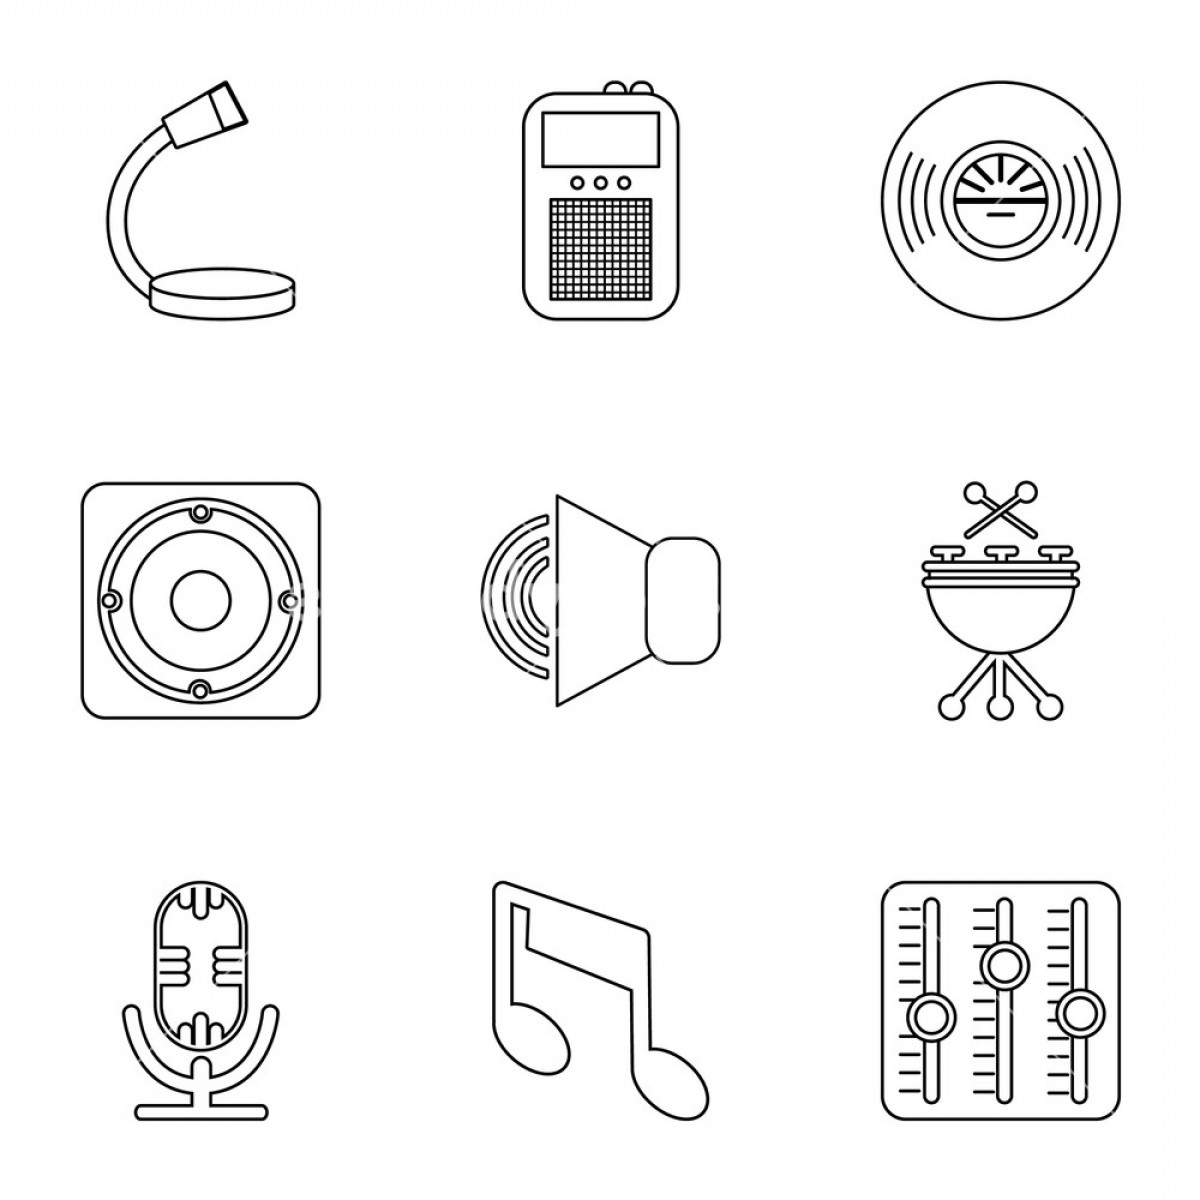 Rock Band Equalizer Vector: Music Player Icons Set Outline Set Of Music Player Vector Icons For Web Isolated On White Background Hgtelzfhgmjjygp